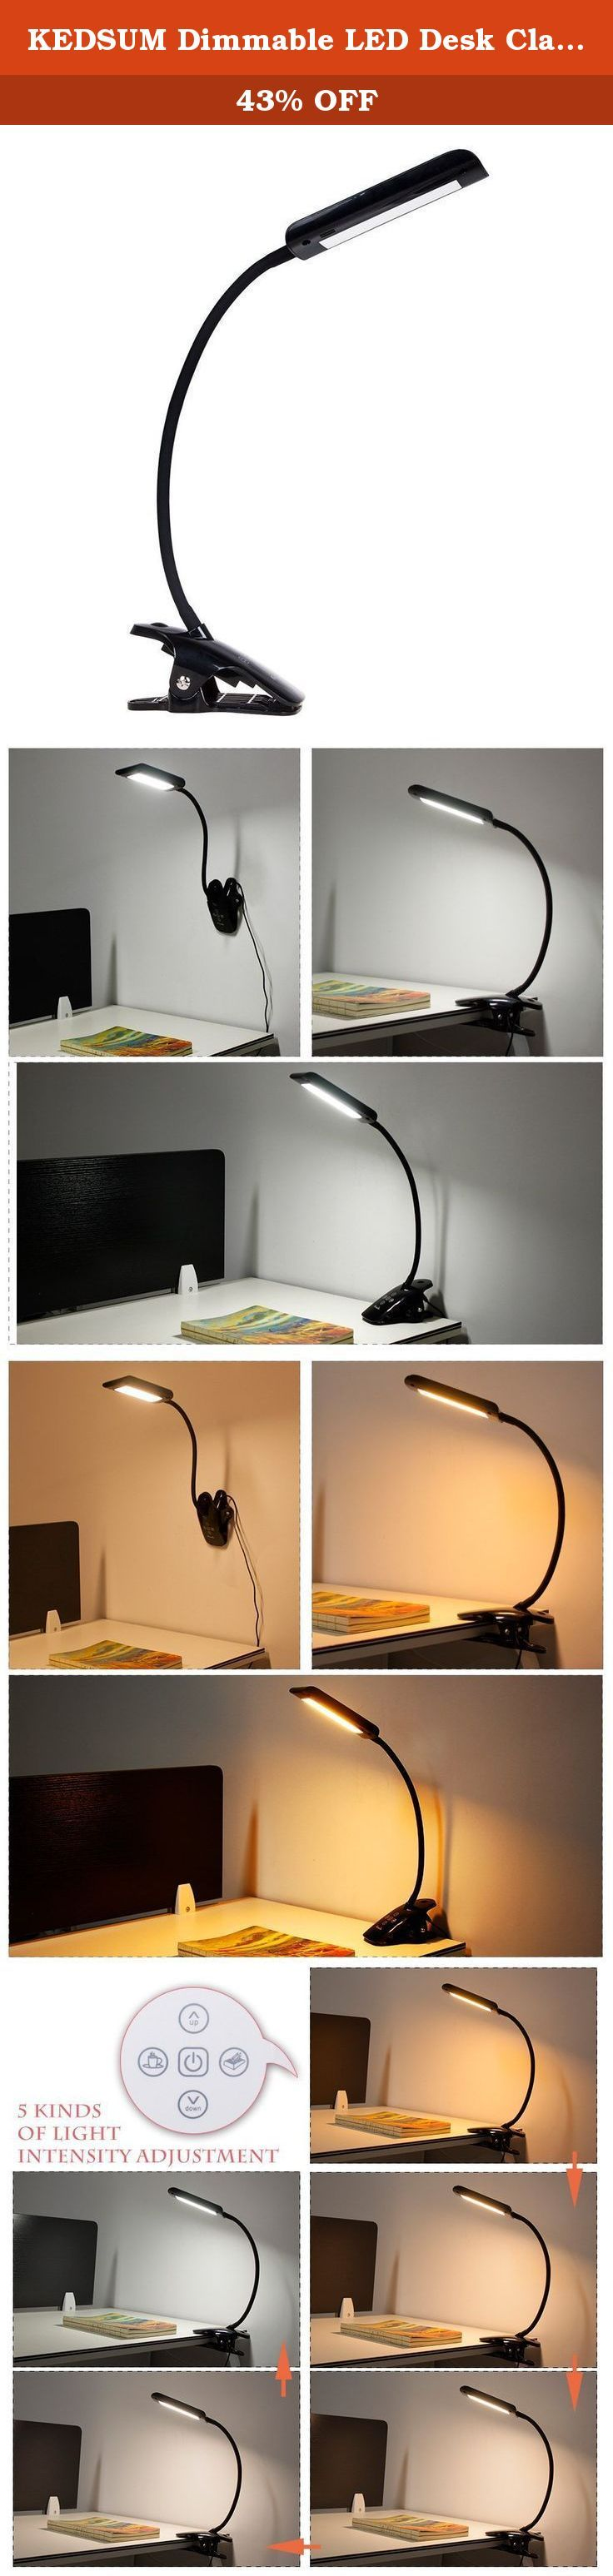 KEDSUM Dimmable LED Desk Clamp Lamp, 5 Lighting Modes, 5-Level Dimmer, Clip On Book Light,Touch Control Panel, Flexible Gooseneck, 7 Watt (Black). KEDSUM 7W Dimmable LED Clip-On Desk Lamp A multi function LED lamp that it is environmentally friendly and soft on the eyes .Perfect light it is available at the touch of a button. 5 Lighting Modes and 5-Level Dimmer : you will find the five mode with simple touch coffee button or reading button .Each lighting modes have five level brightness…